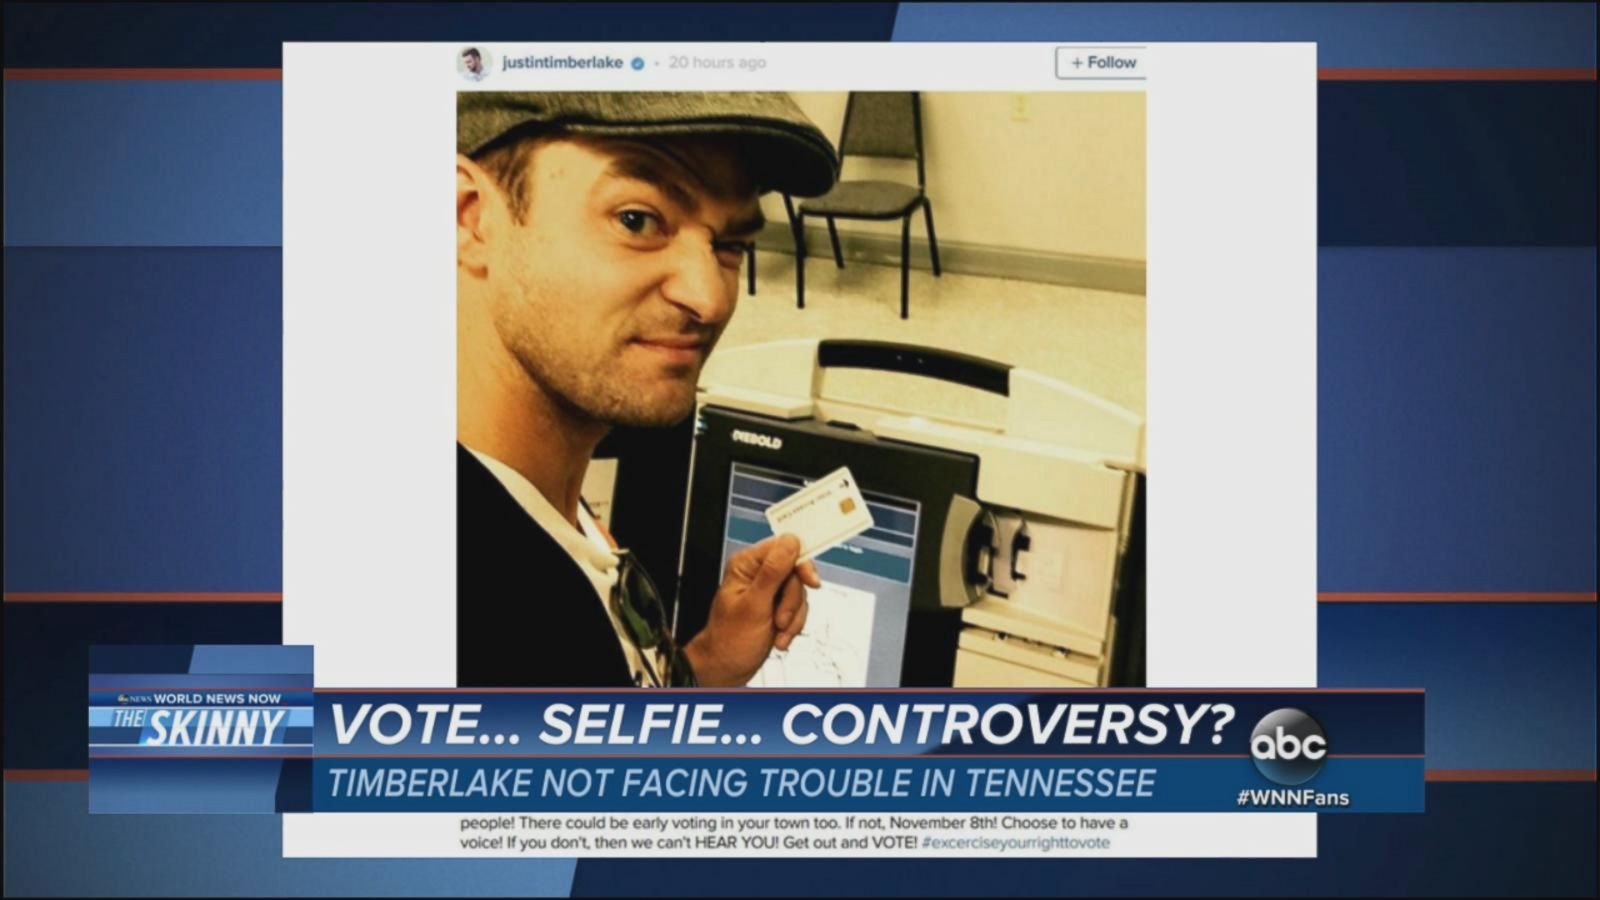 VIDEO: Justin Timberlake Will Not Face Criminal Charges for Voting Selfie